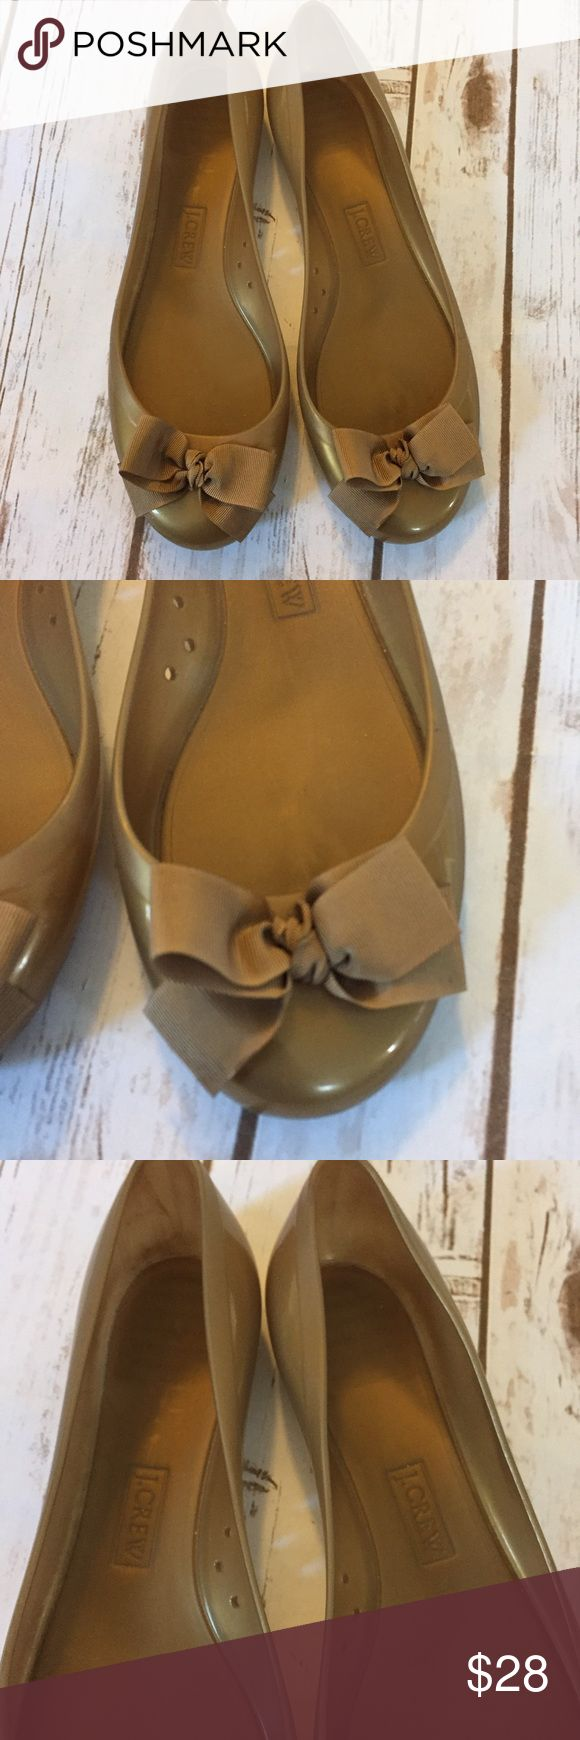 J. Crew Rainy Day Rubber Ballet Flats Bow Sz 9 Women's size 9 J. Crew rainy day bow ballet flats shoes. Gold metallic in color. Overall good condition with minor scuffing as seen in photos.  Item is from a smoke free home. J. Crew Shoes Flats & Loafers